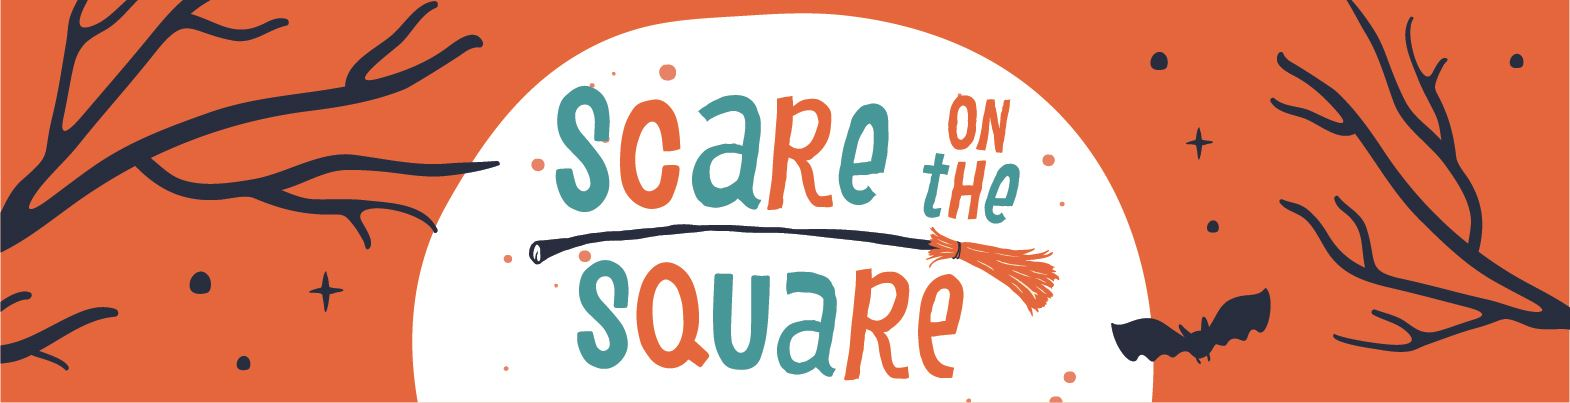 Scare on the Square